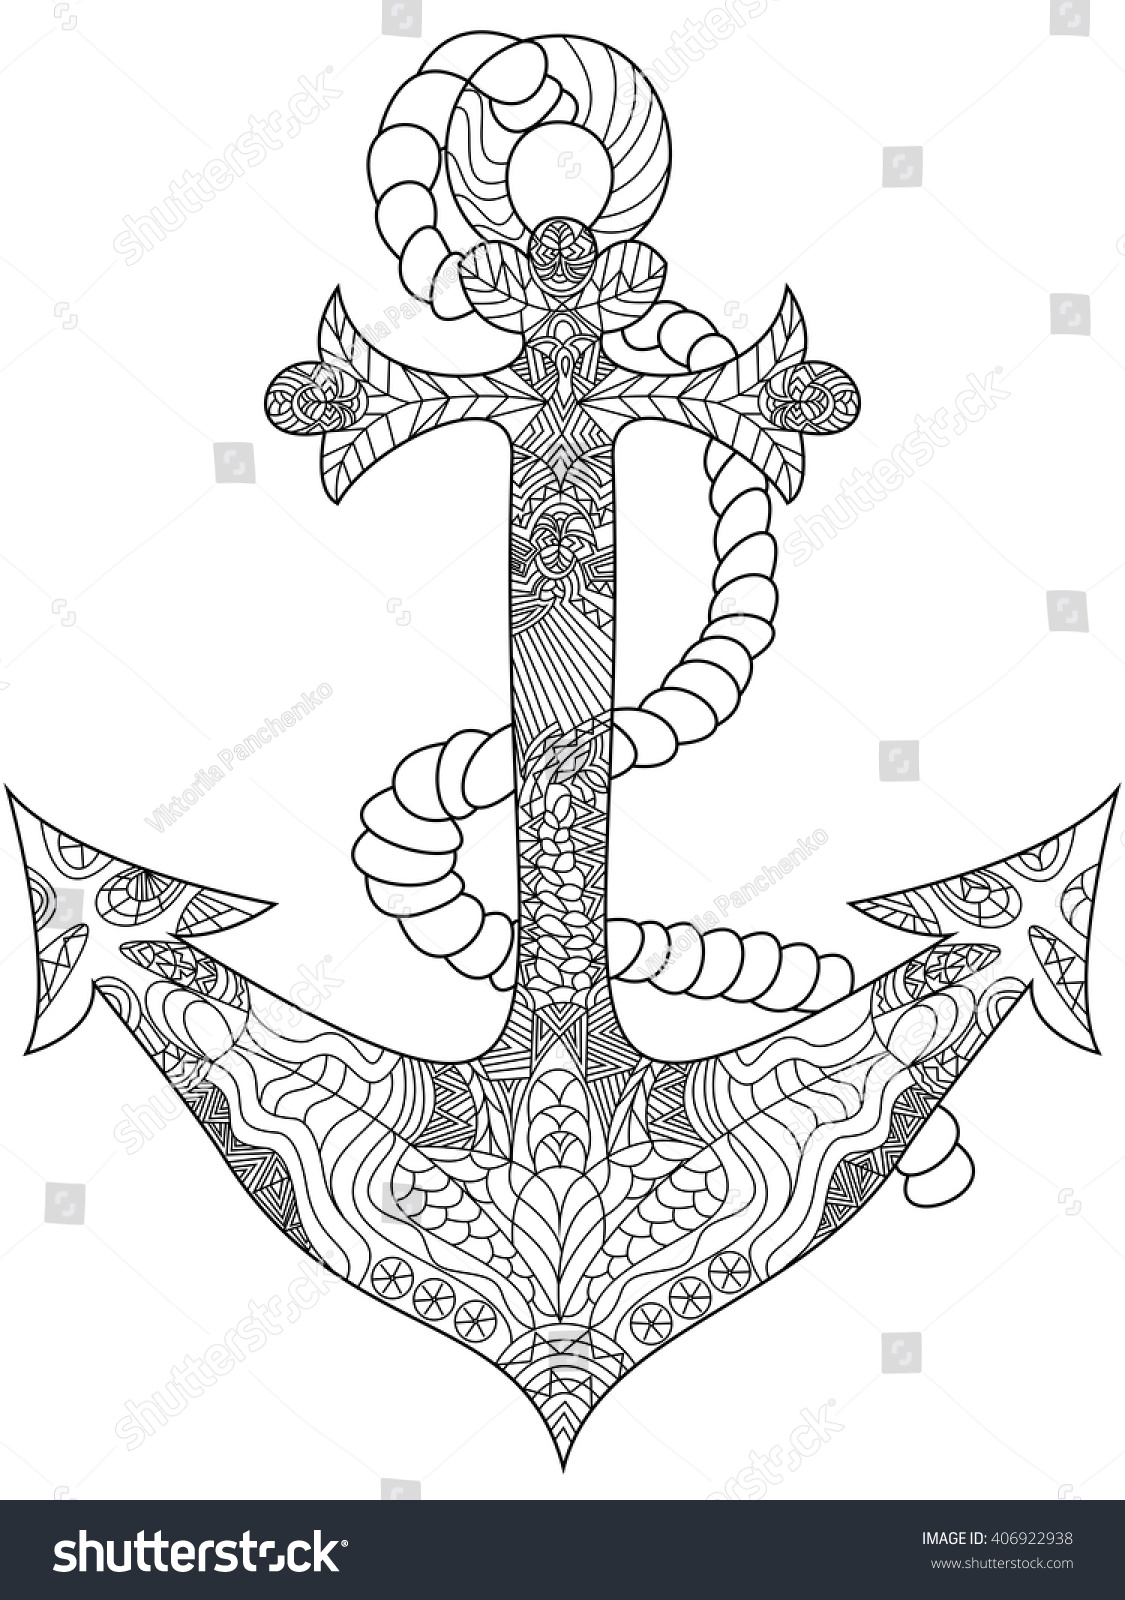 Anchor Coloring Book For Adults Vector Illustration Anti Stress Adult Zentangle